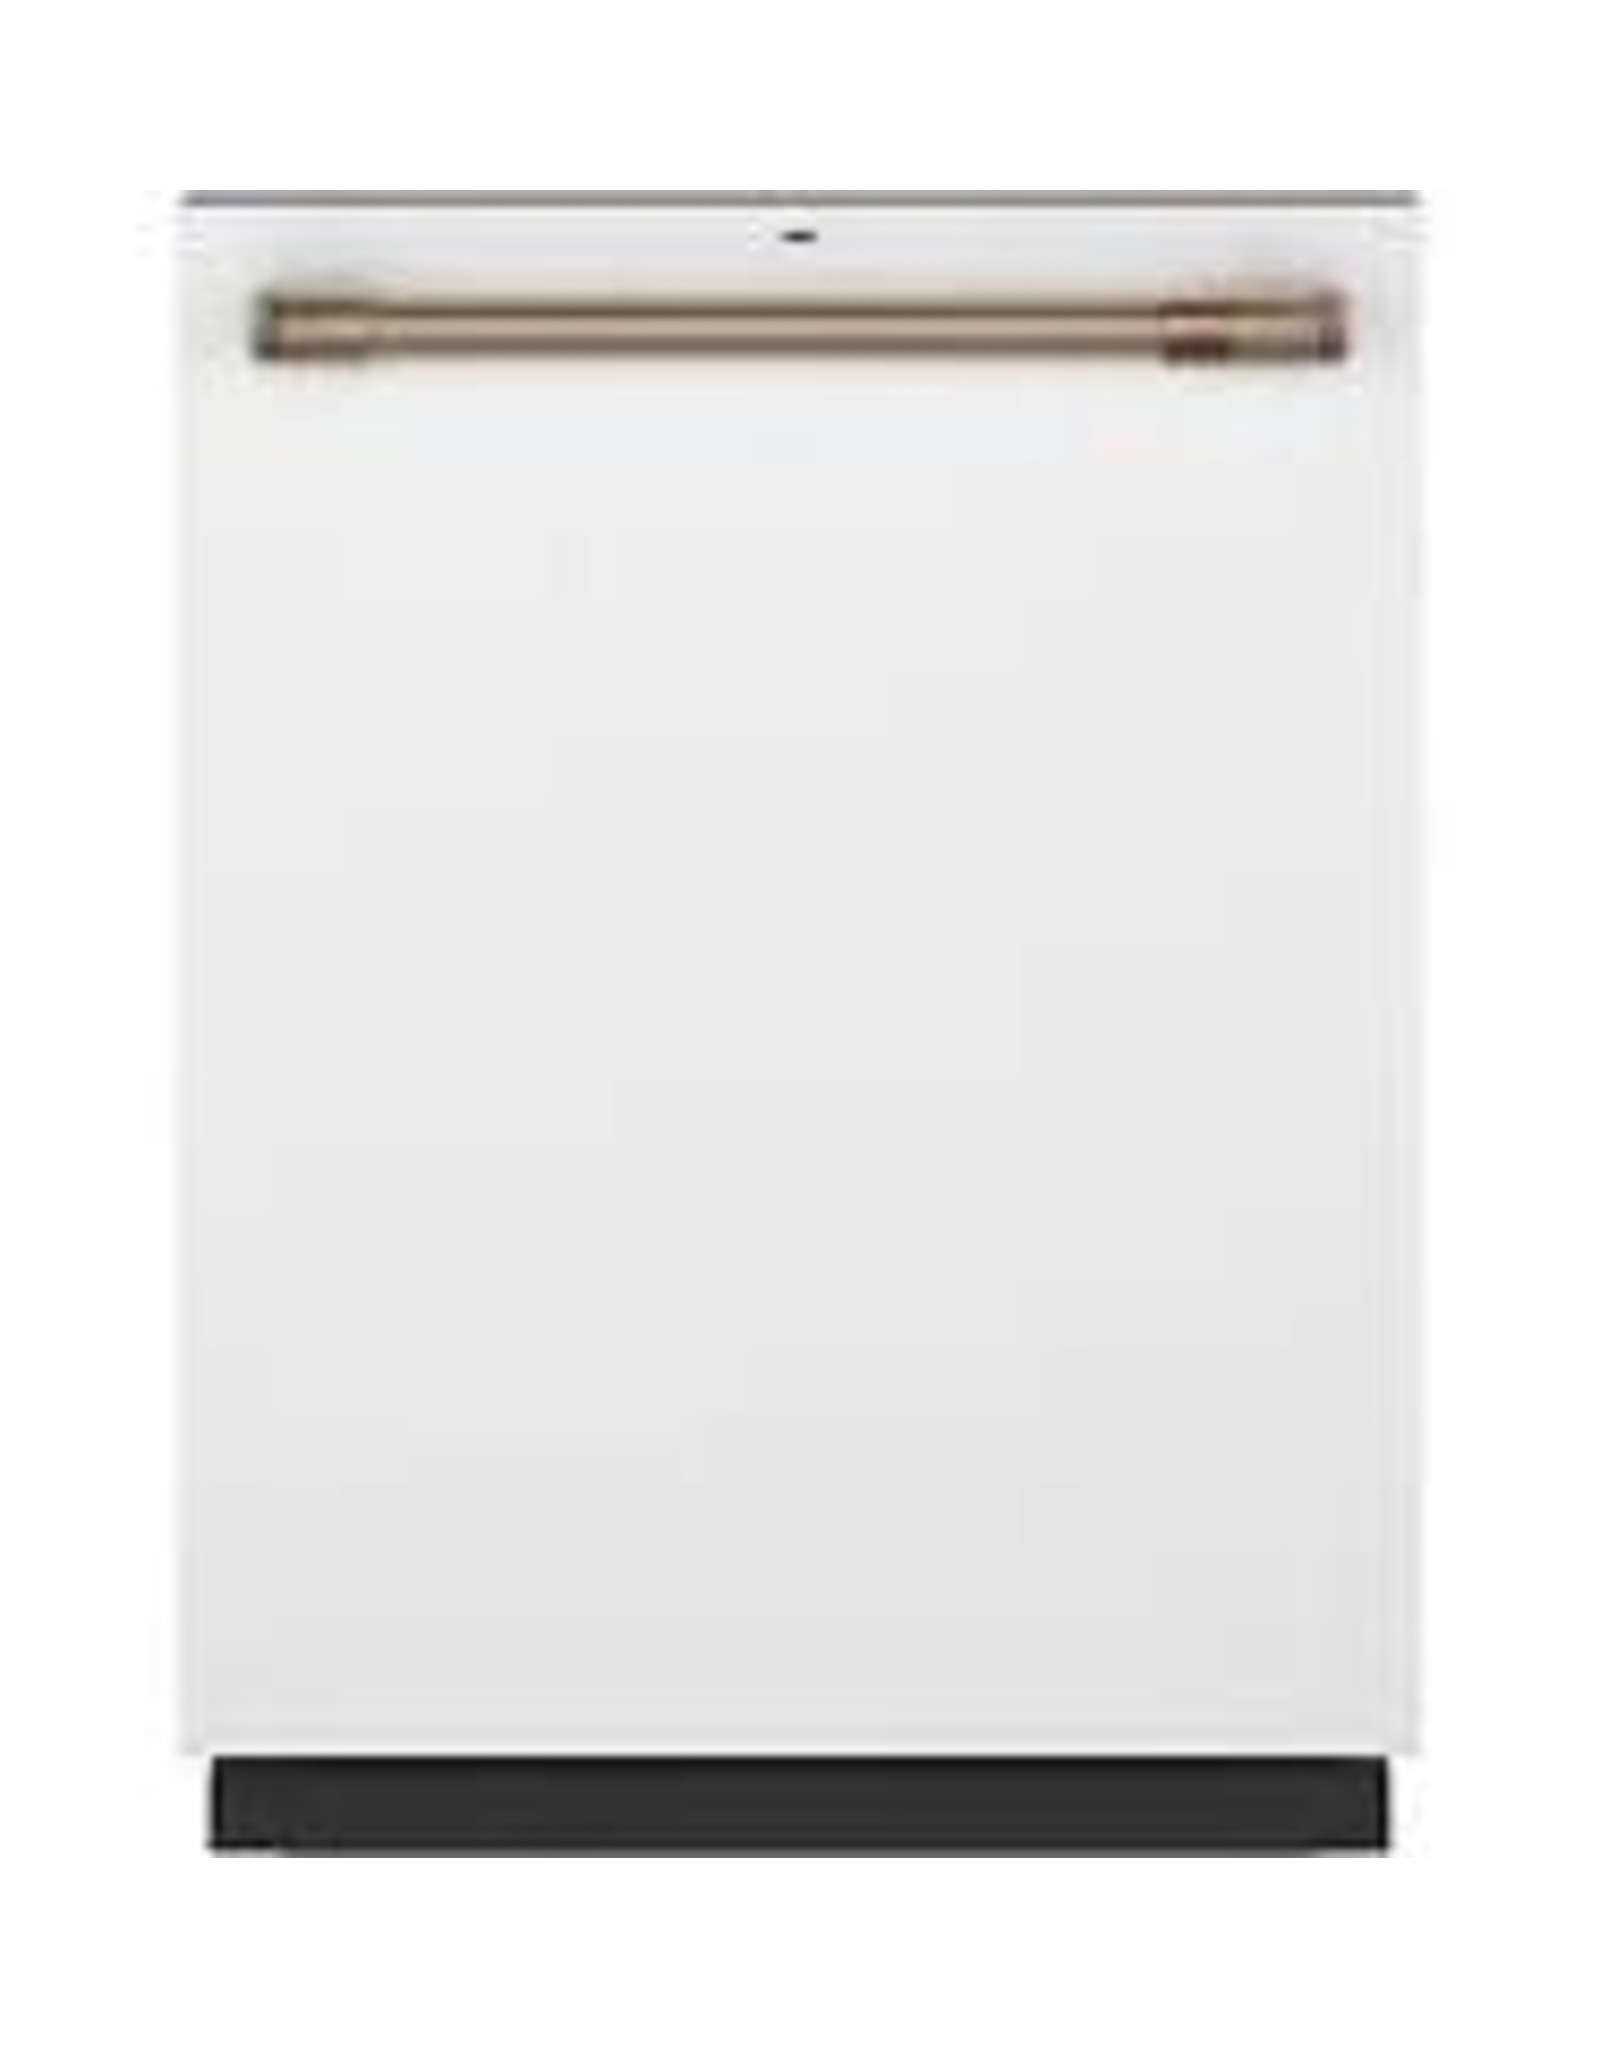 Cafe' CDT845P4NW2 24 in. Fingerprint Resistant Matte White Top Control Built-In Tall Tub Dishwasher 120-Volt with 3rd Rack and 45 dBA